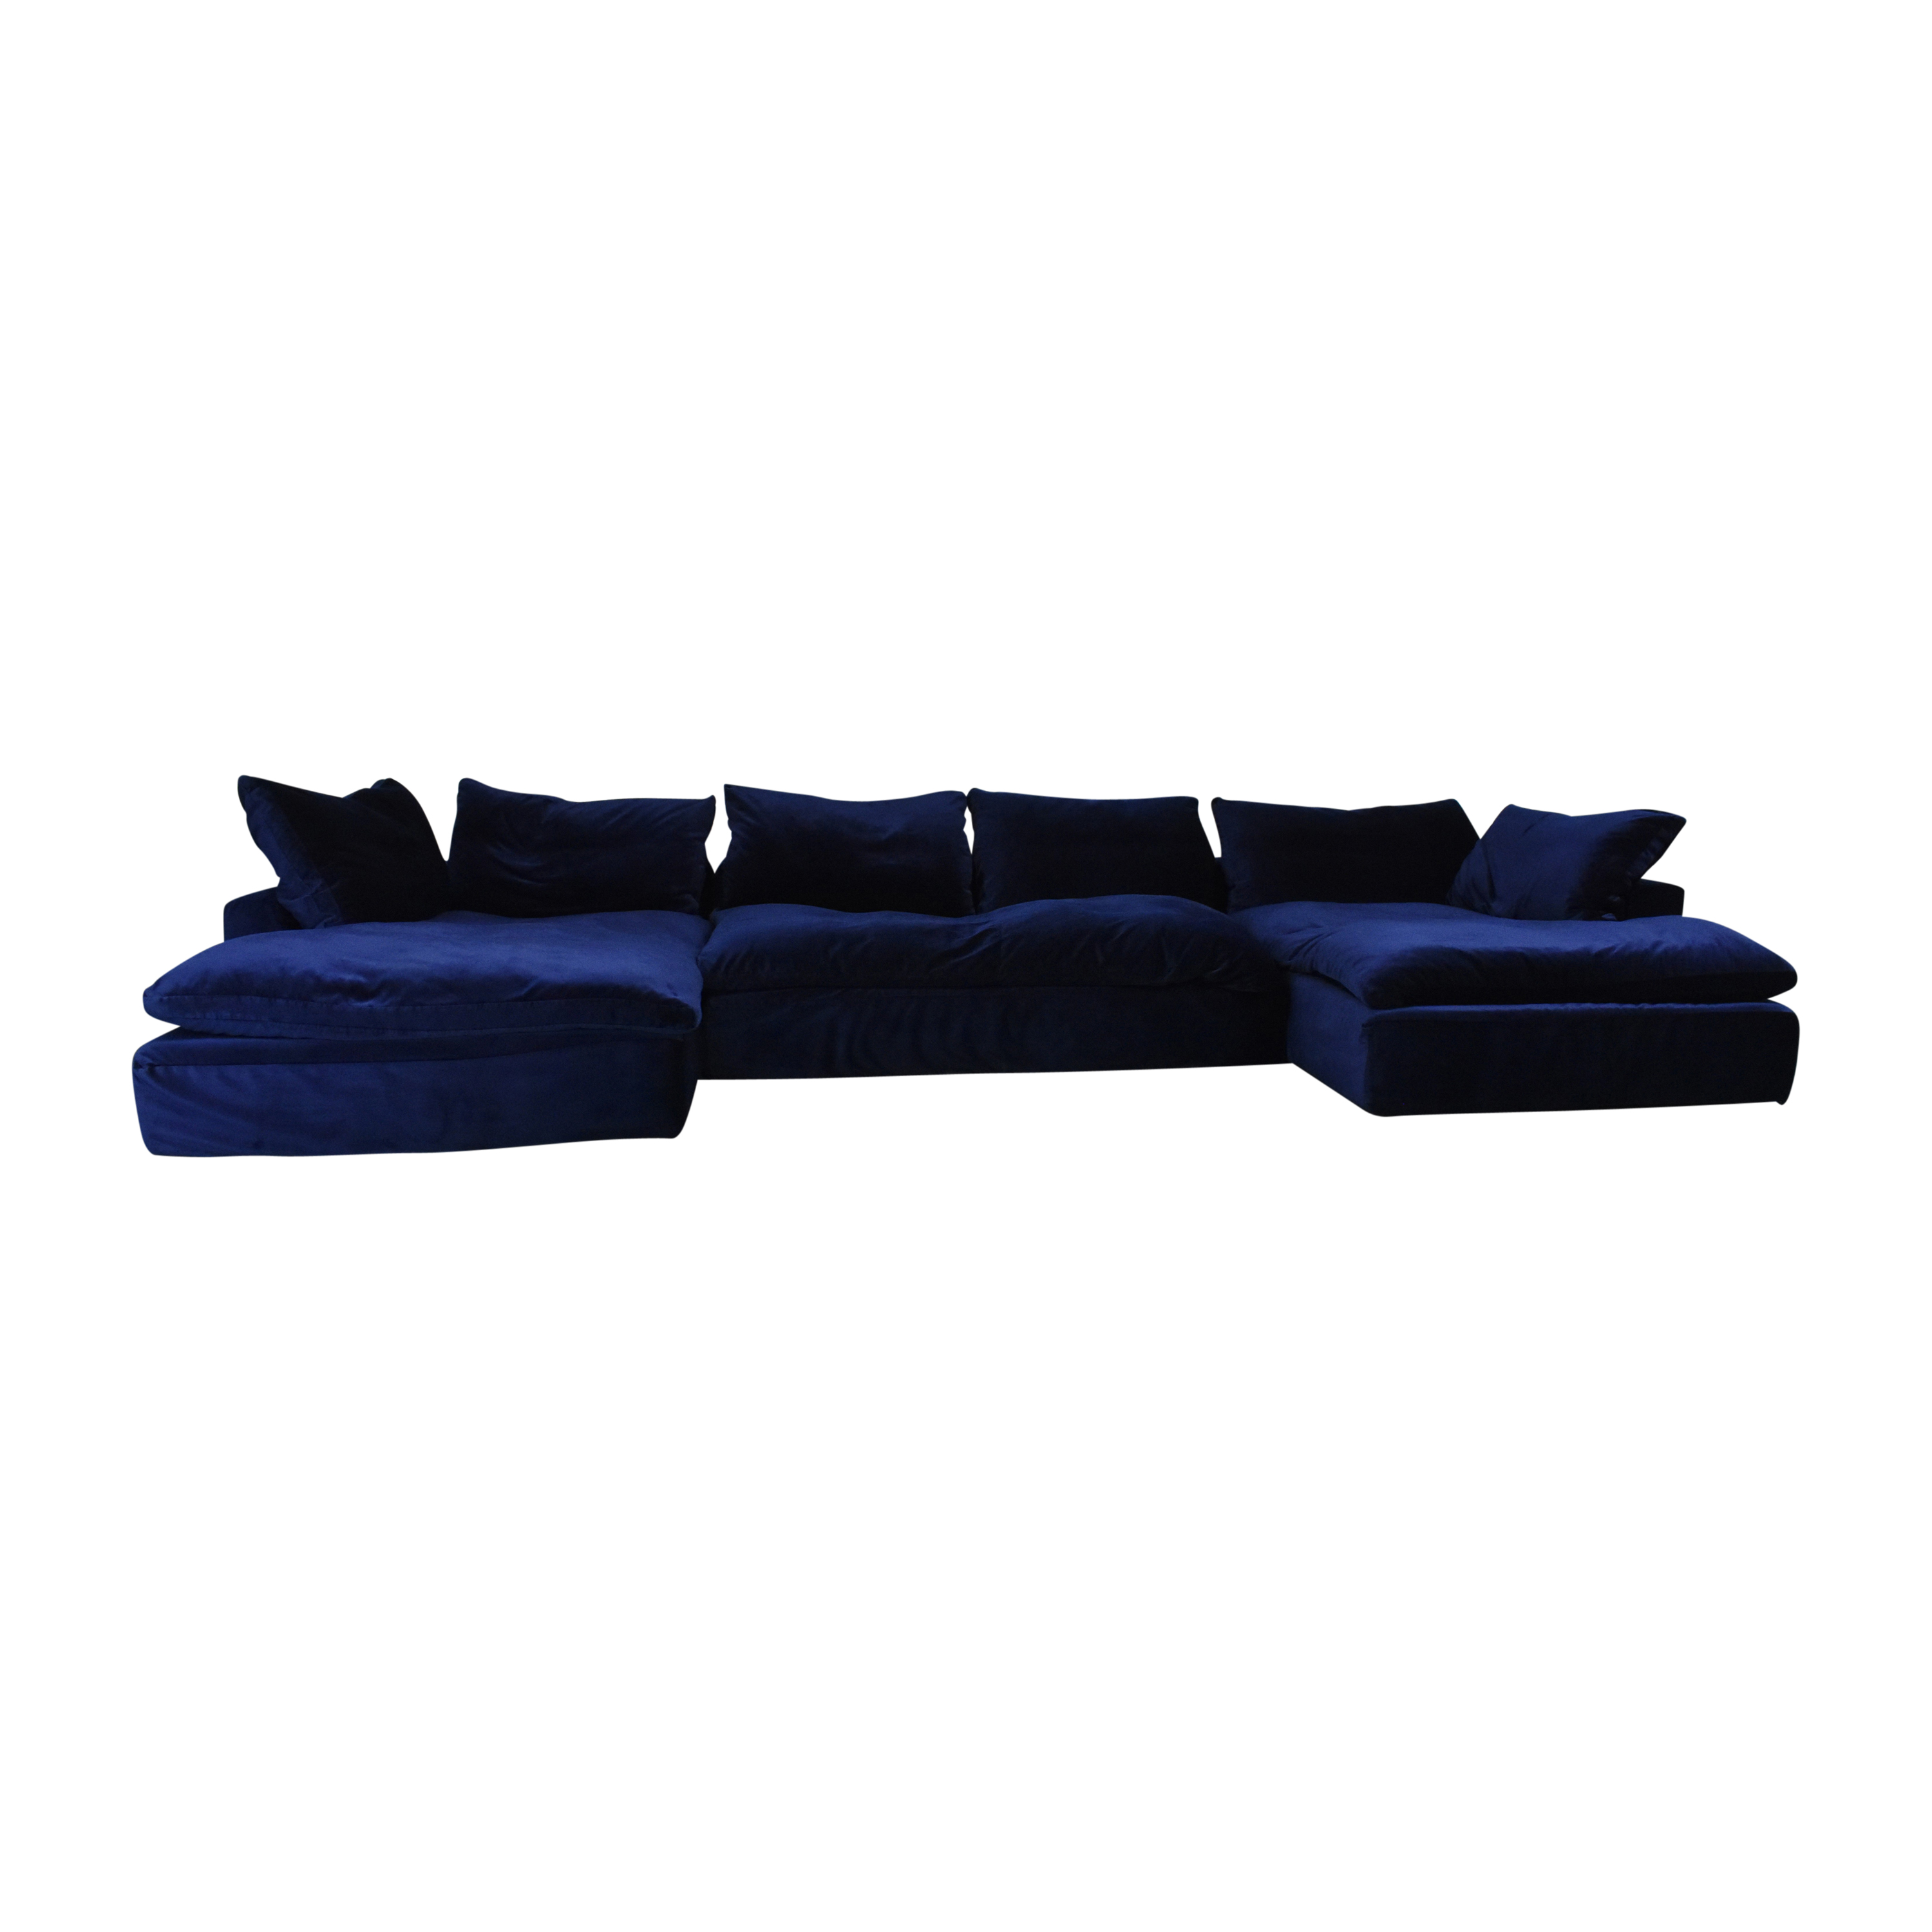 Restoration Hardware Restoration Hardware Custom Cloud Sectional ct